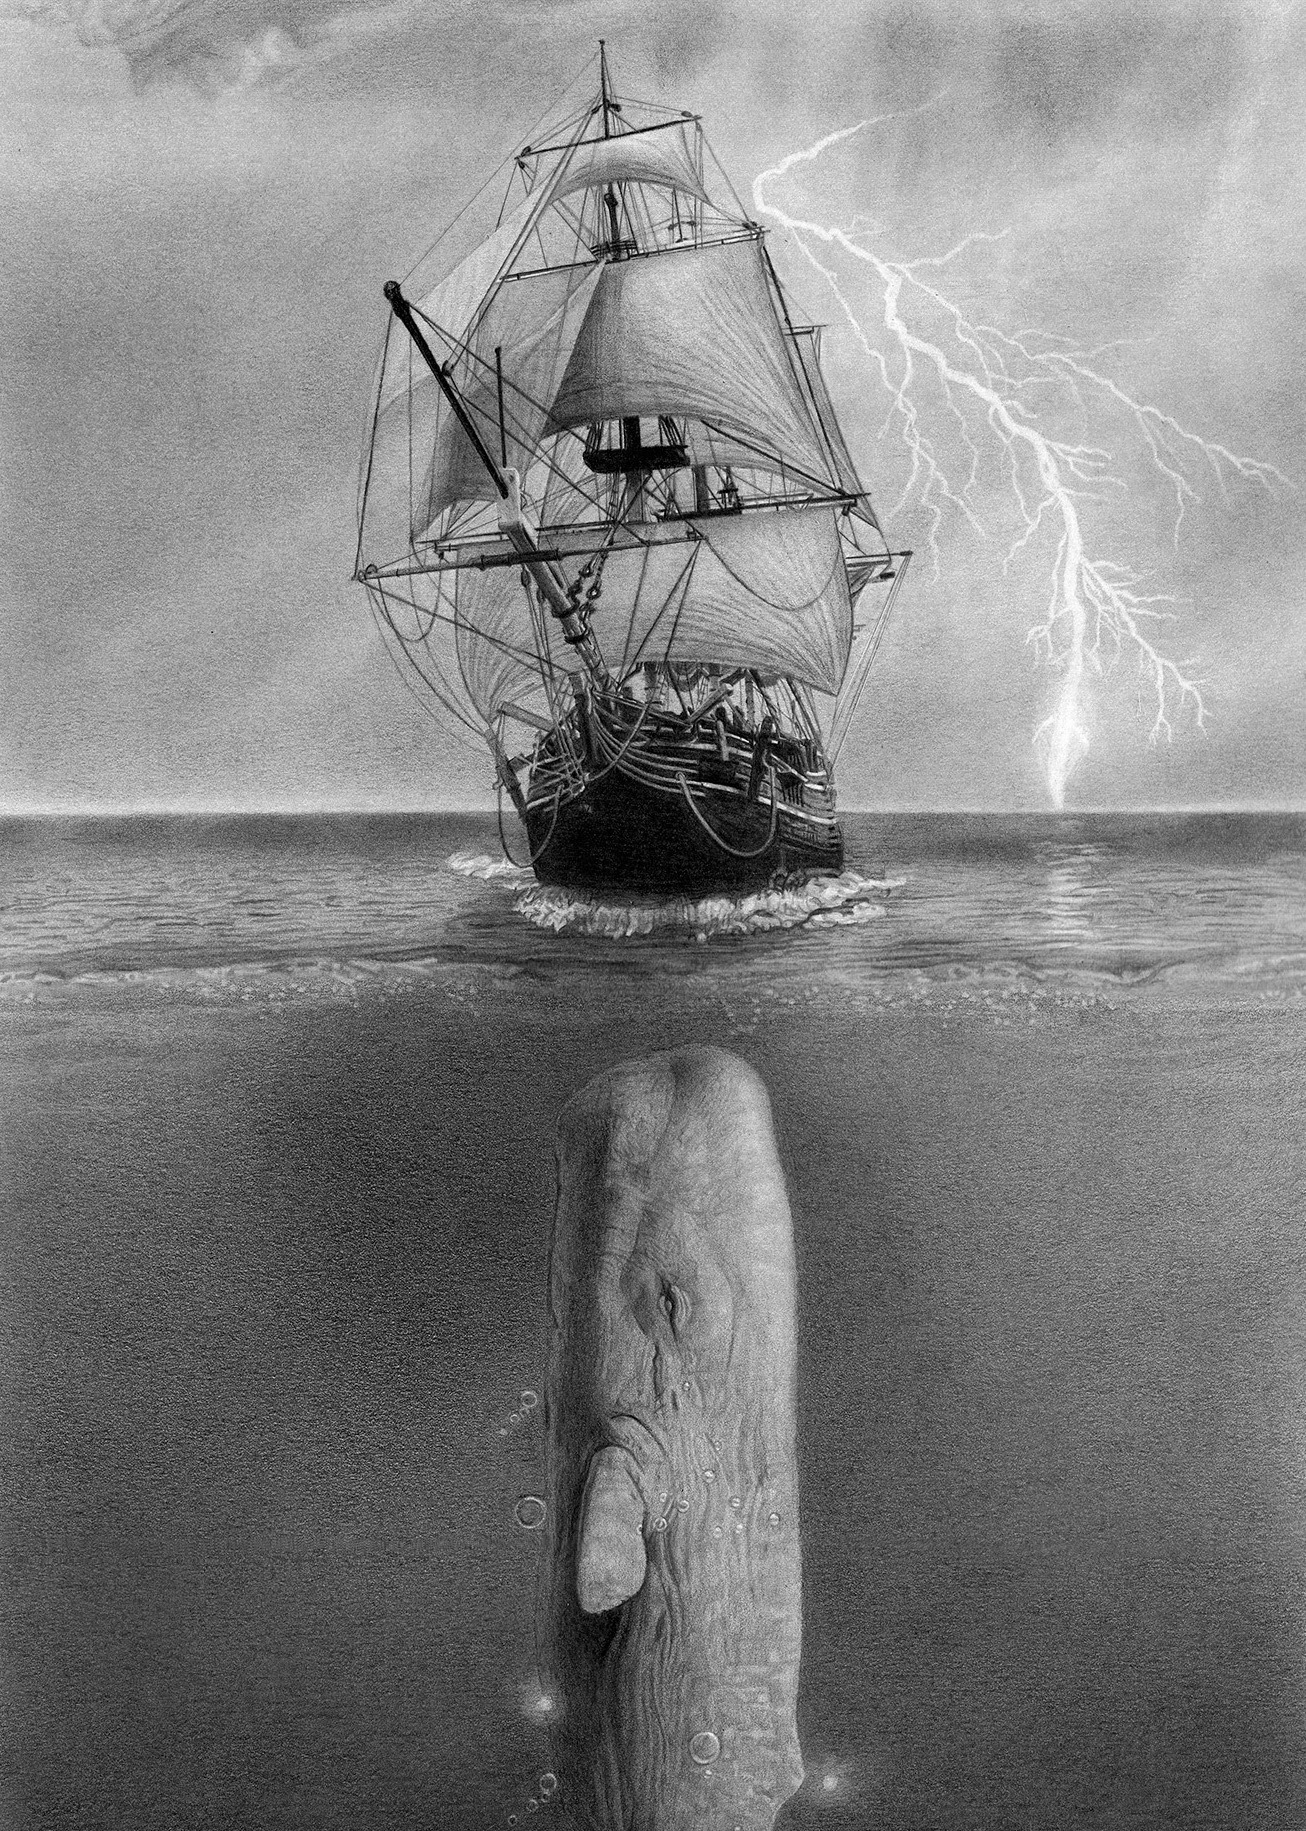 Artist impression of Moby-Dick approaching the Pequod